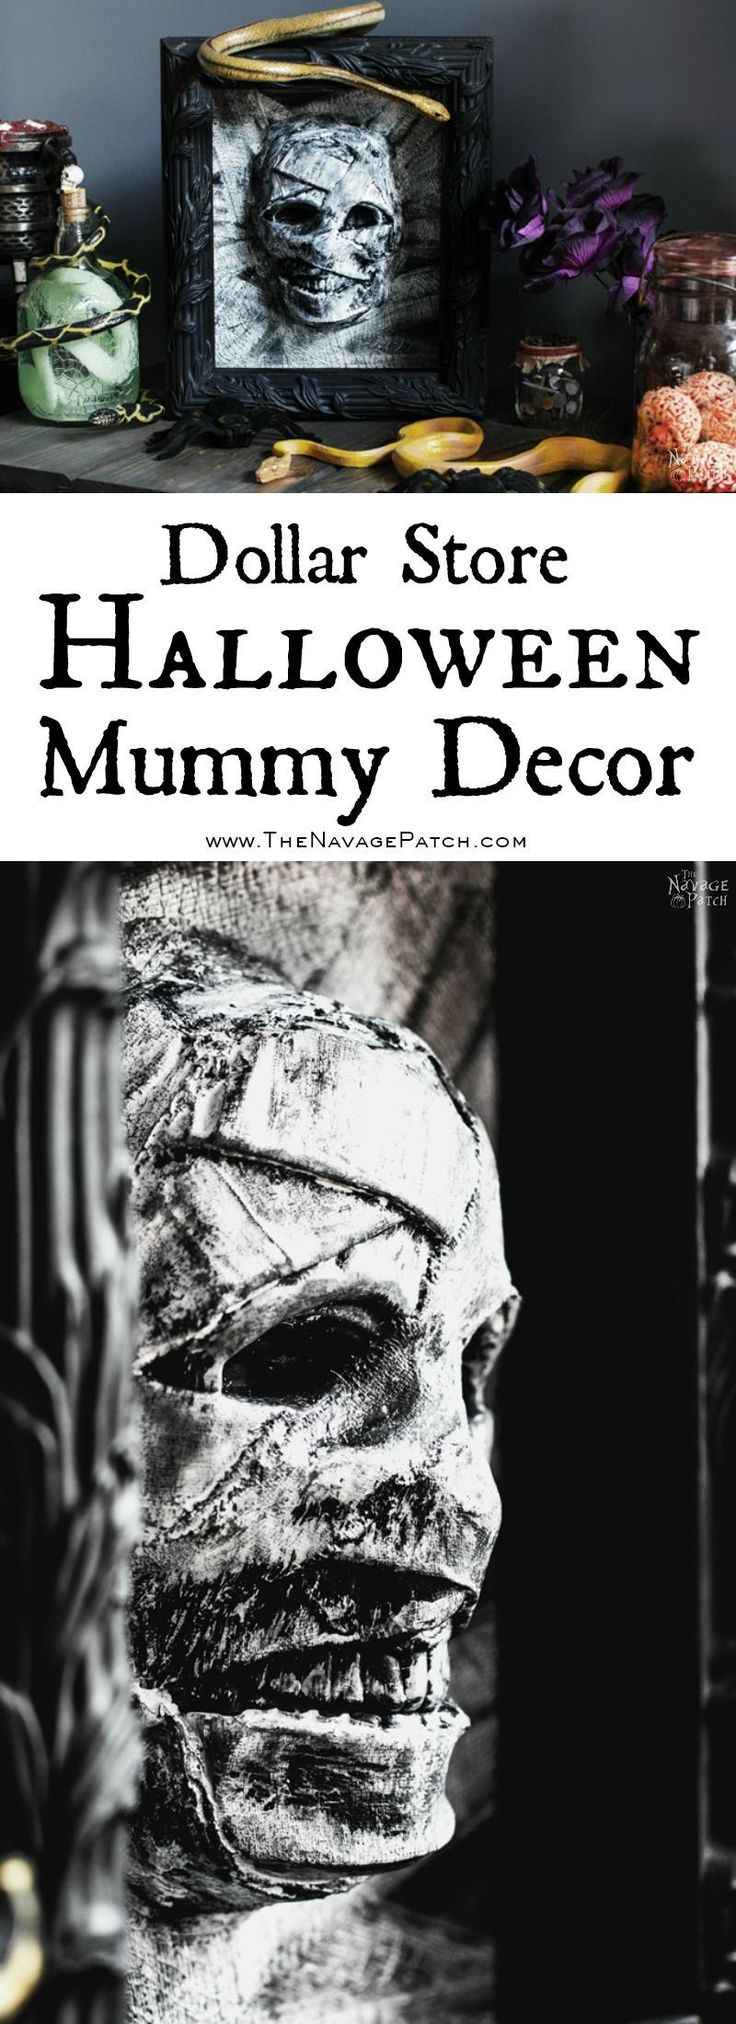 Dollar Store Halloween Mummy Decor | DIY Halloween decor | Dollar store crafts | Gothic decor for Halloween | Easy & budget crafts | DIY Halloween prop | Spooky and gothic decor | Upcycled Halloween decor | TheNavagePatch.com